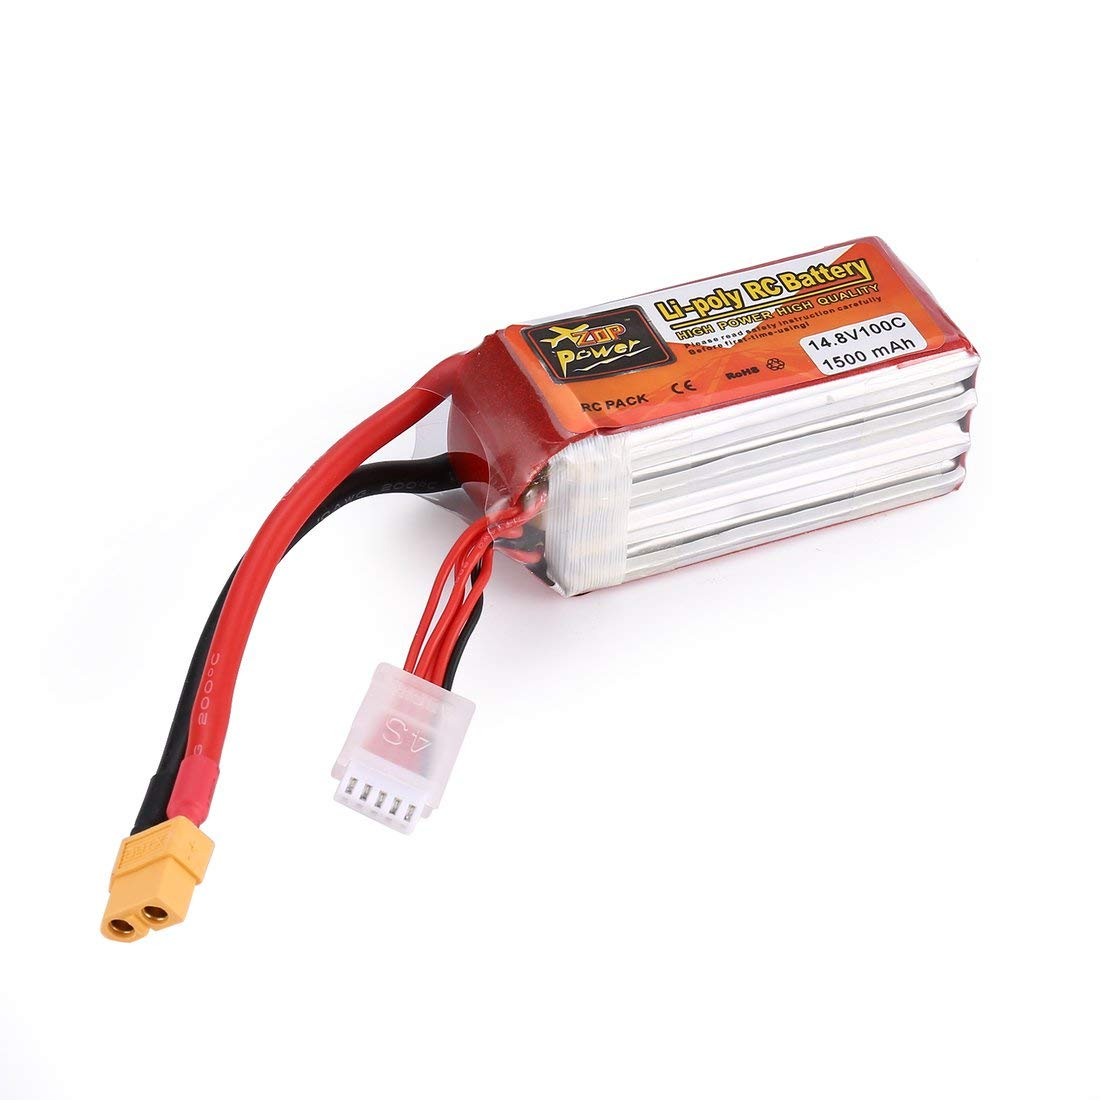 ZOP Power 14.8V 1500mAh 100C 4S 1P Lipo Battery XT60 Plug Rechargeable for RC Racing Drone Helicopter Car Boat Model - Red&Silver Formulaone